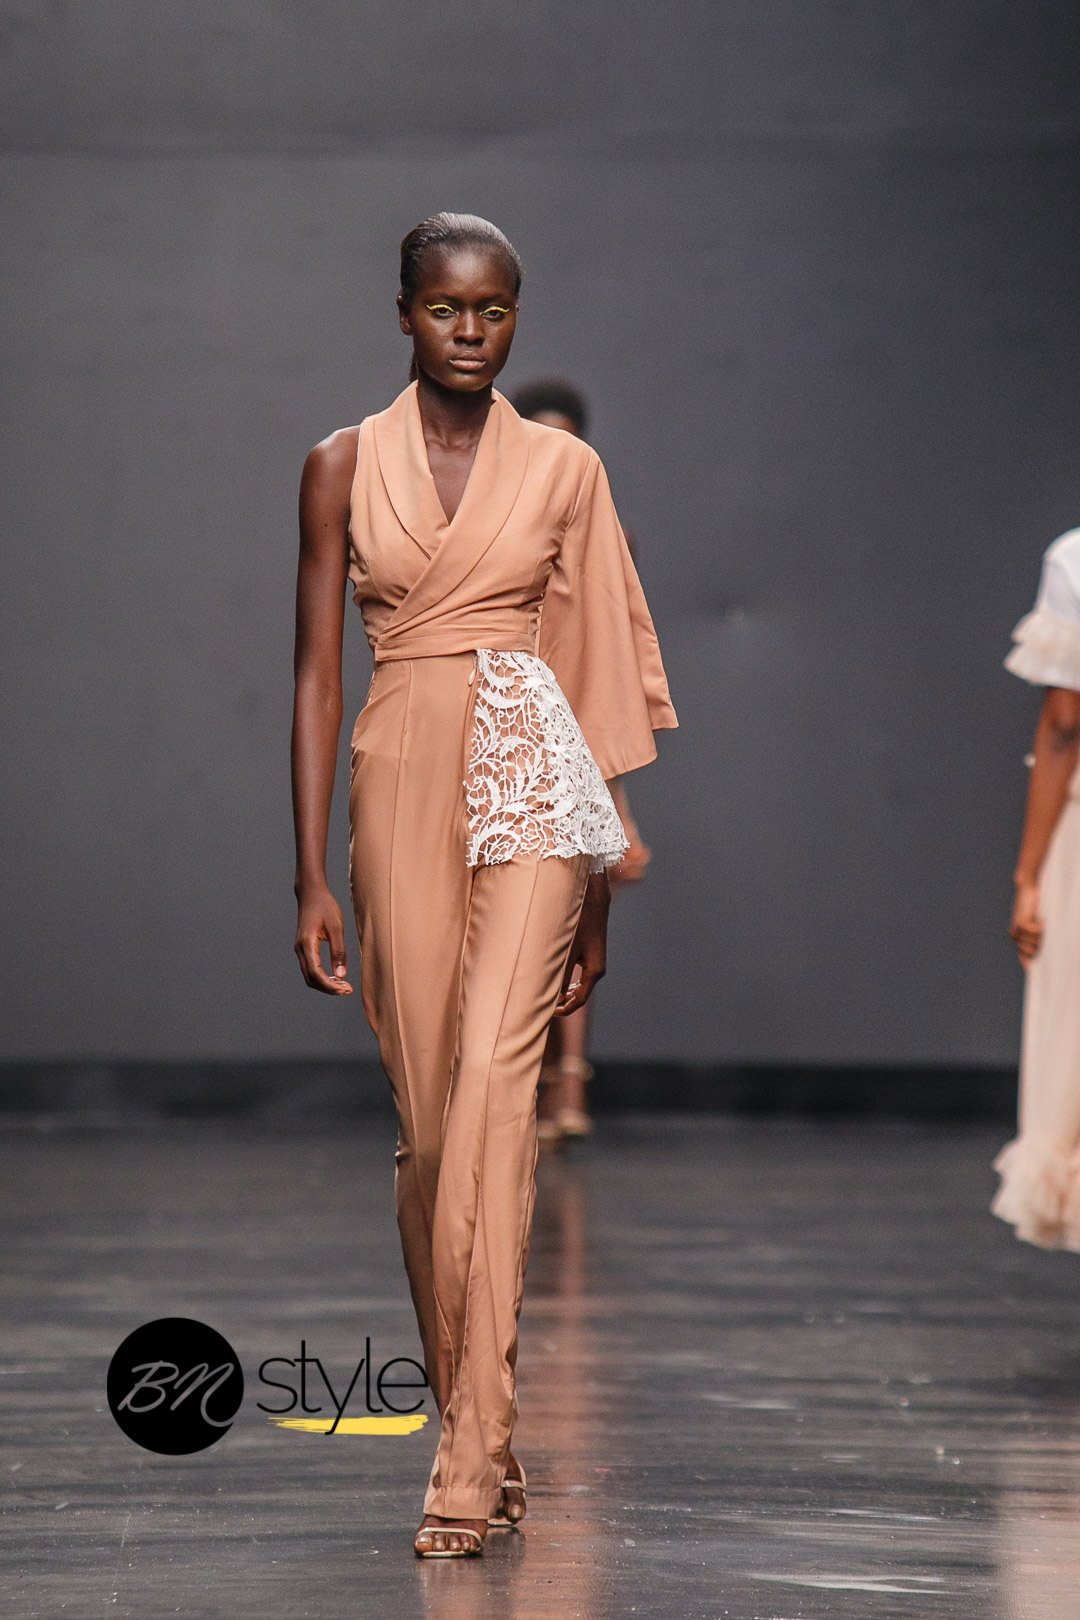 Demure by Denike at the Lagos Fashion Week 2018